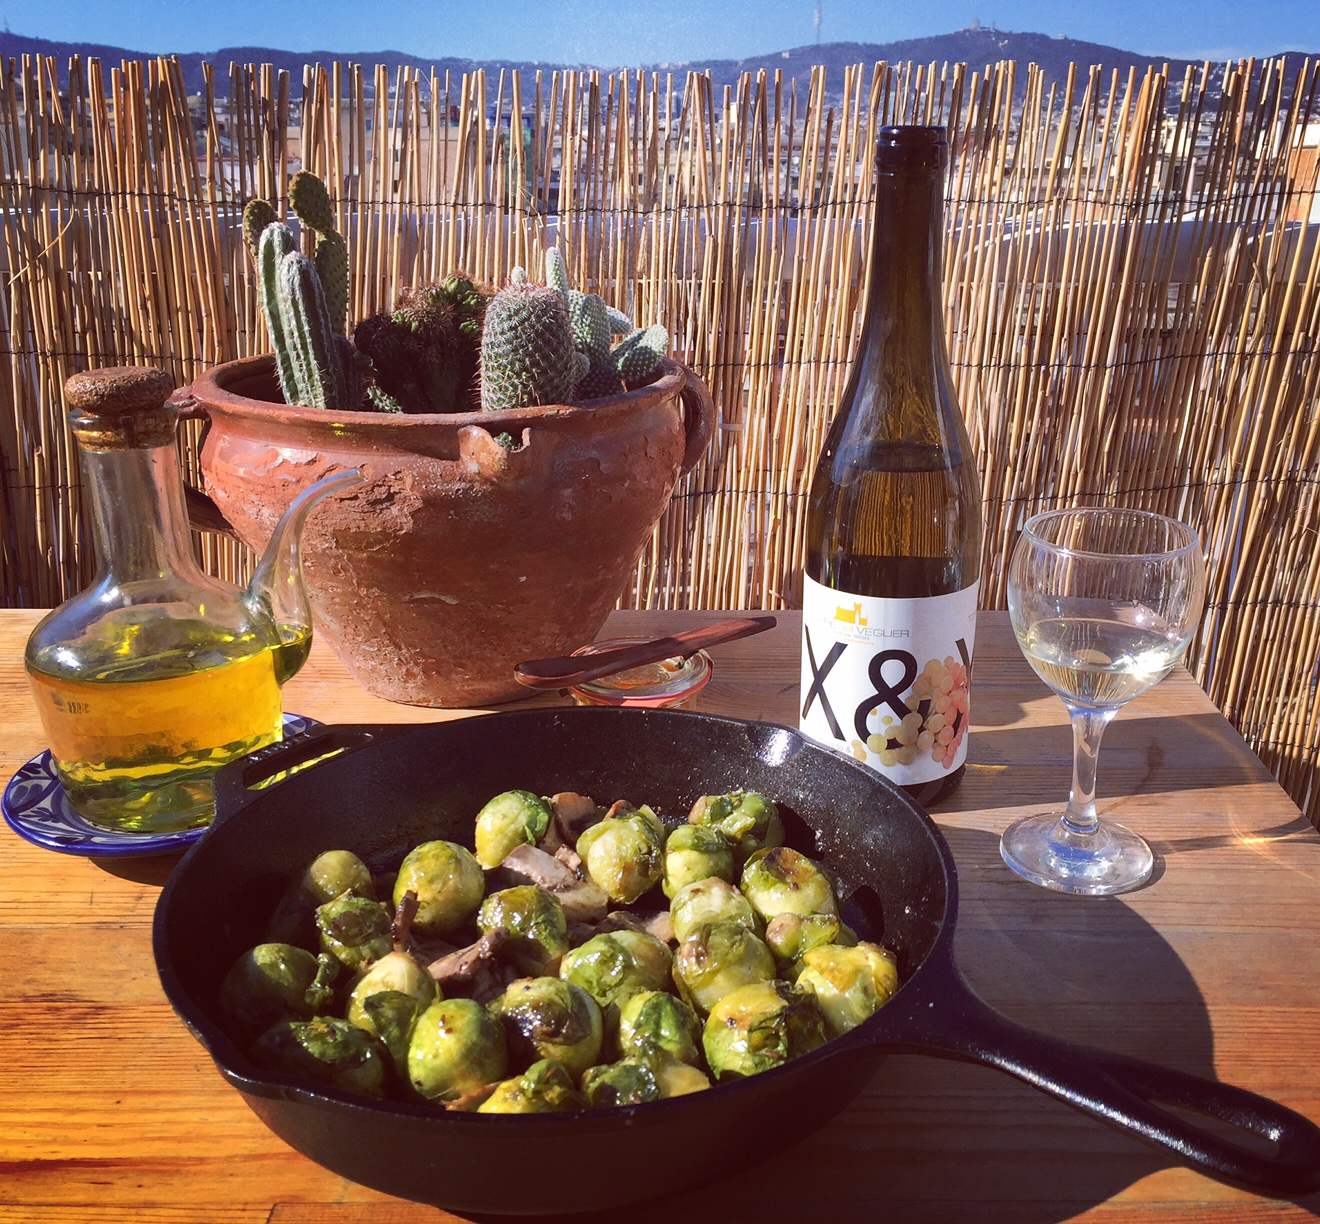 Brussels sprouts with truffle oil on my Lodge Cast Iron Skillet over looking Barcelona